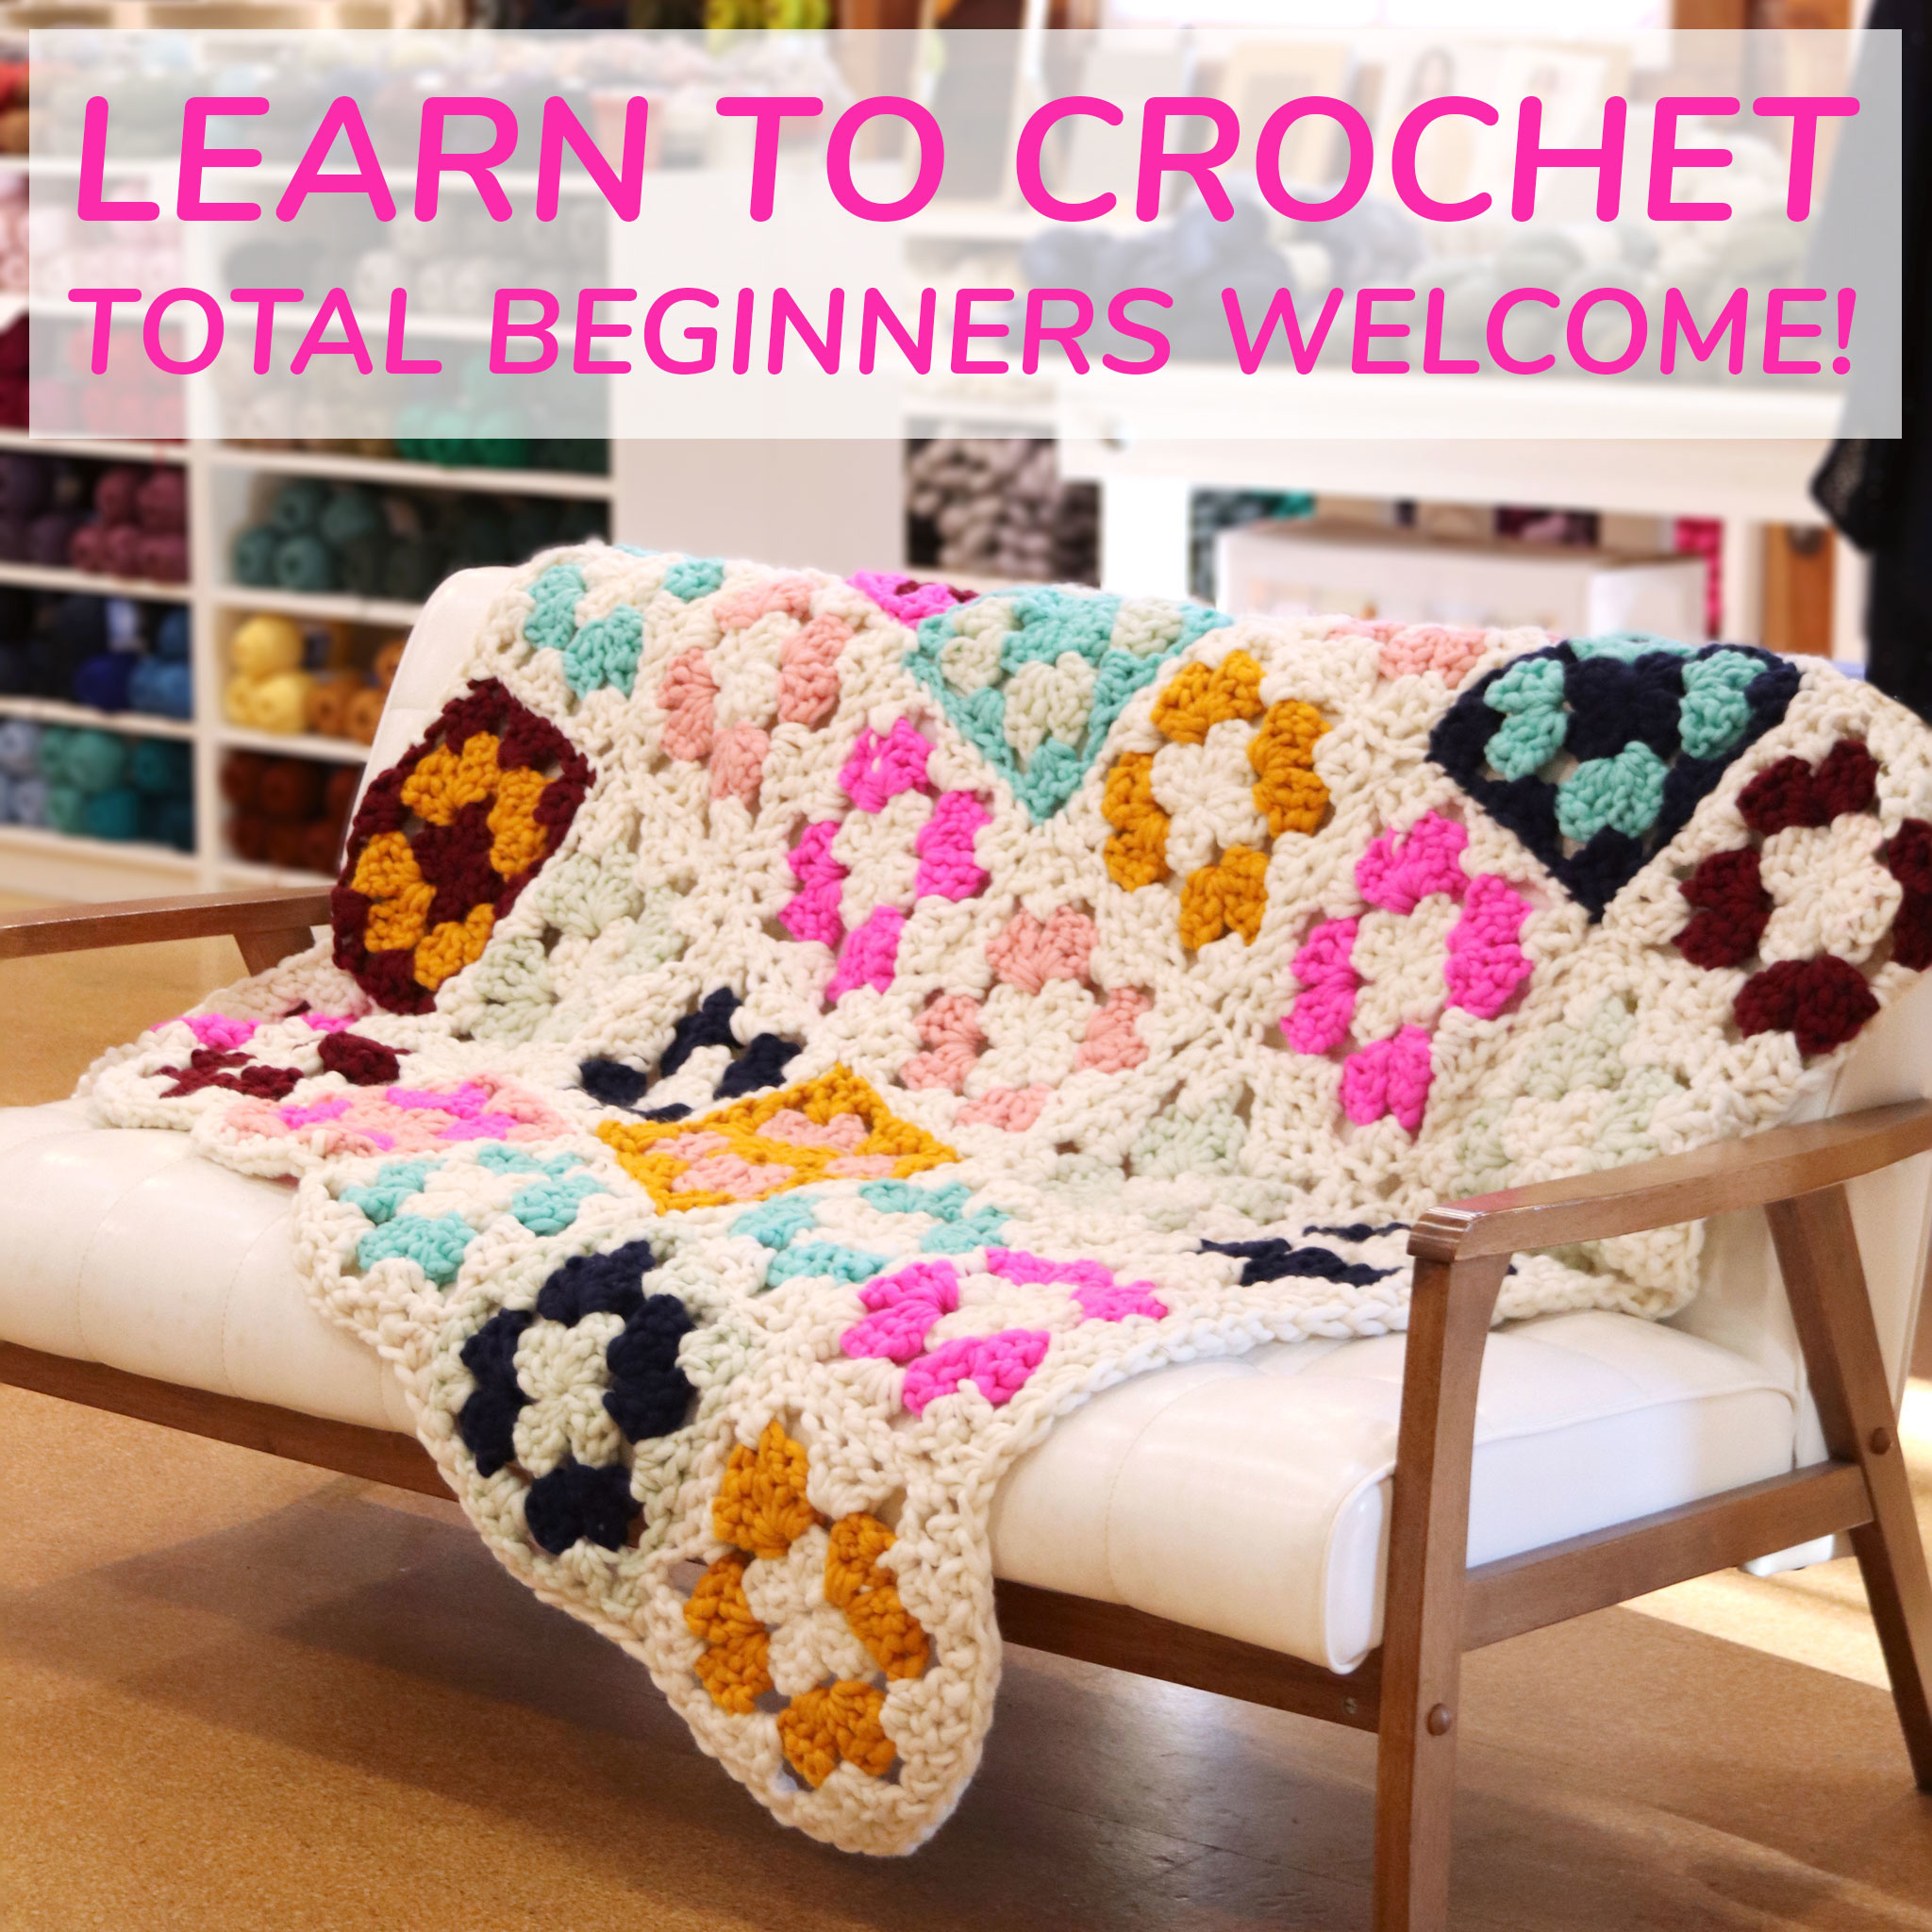 Cast Away Learn to Crochet - Granny Square Workshop